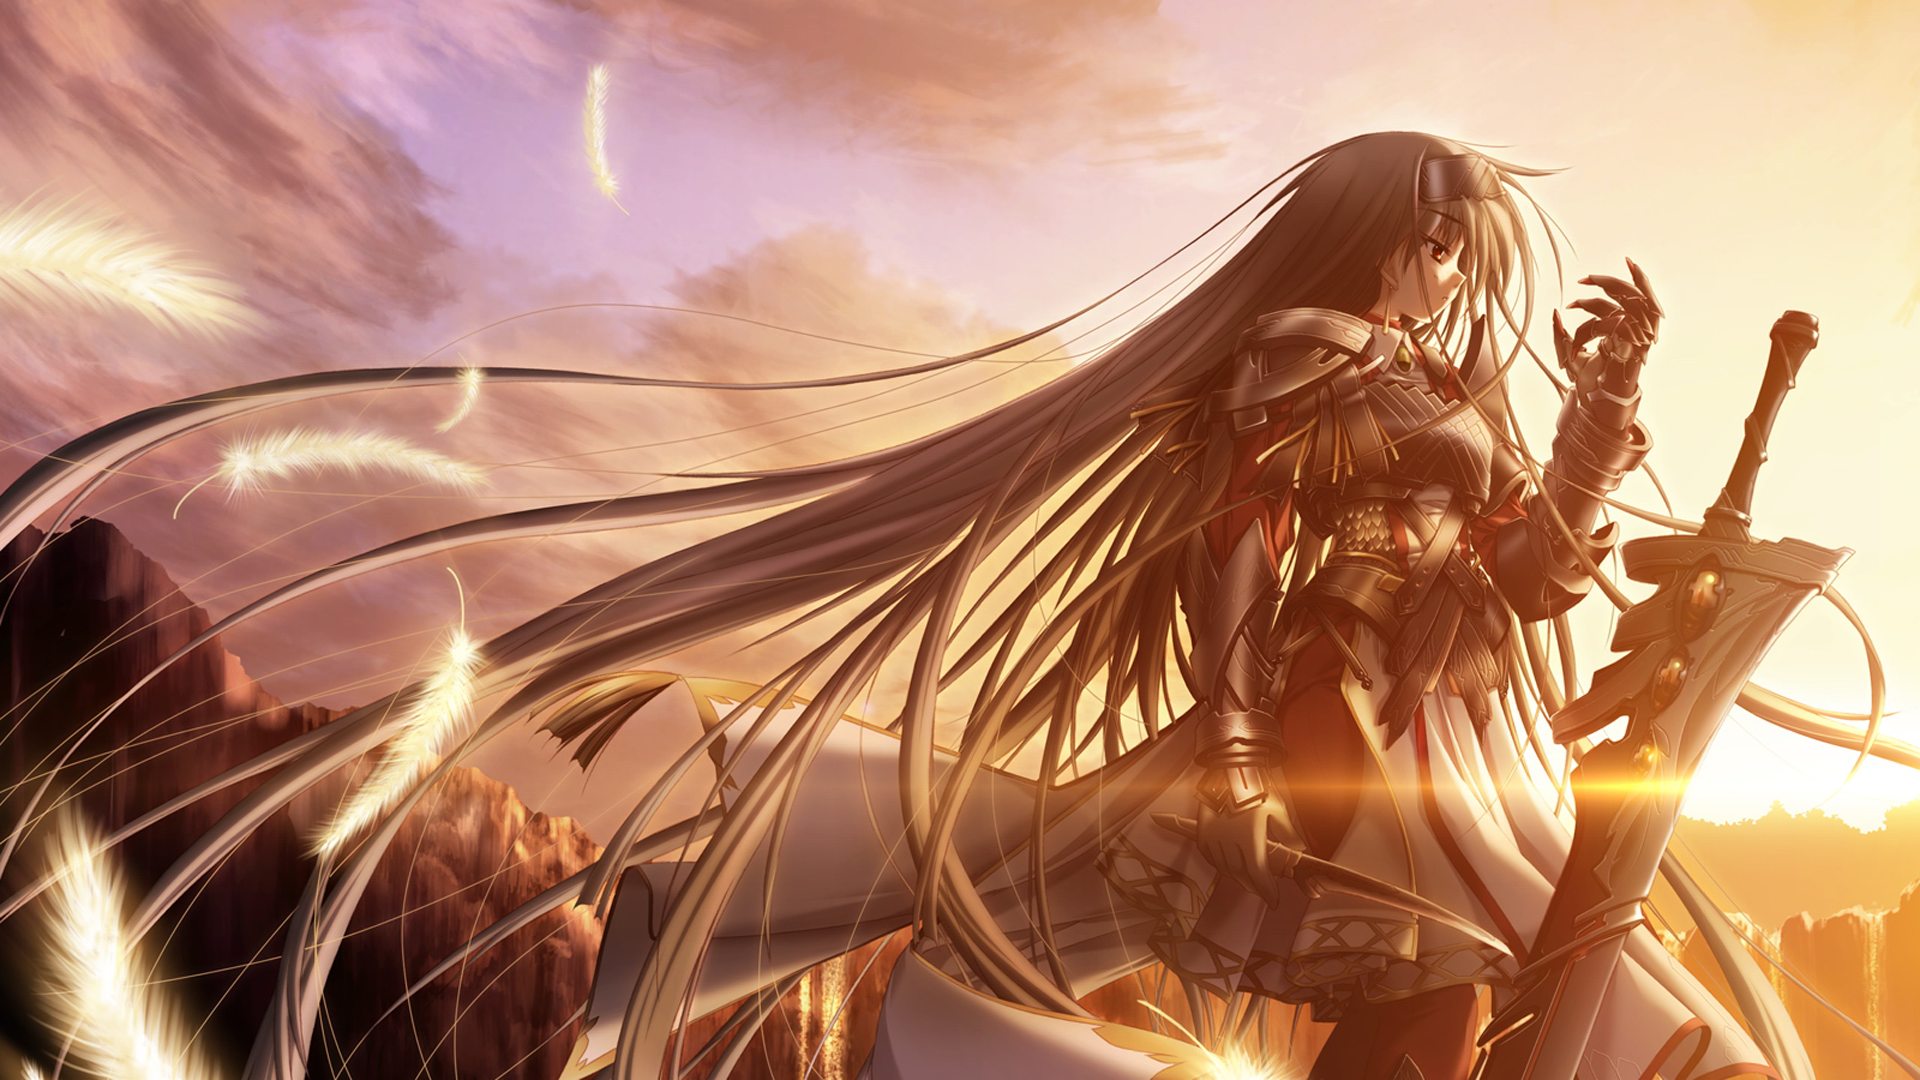 Www Anime Wallpaper Download Com